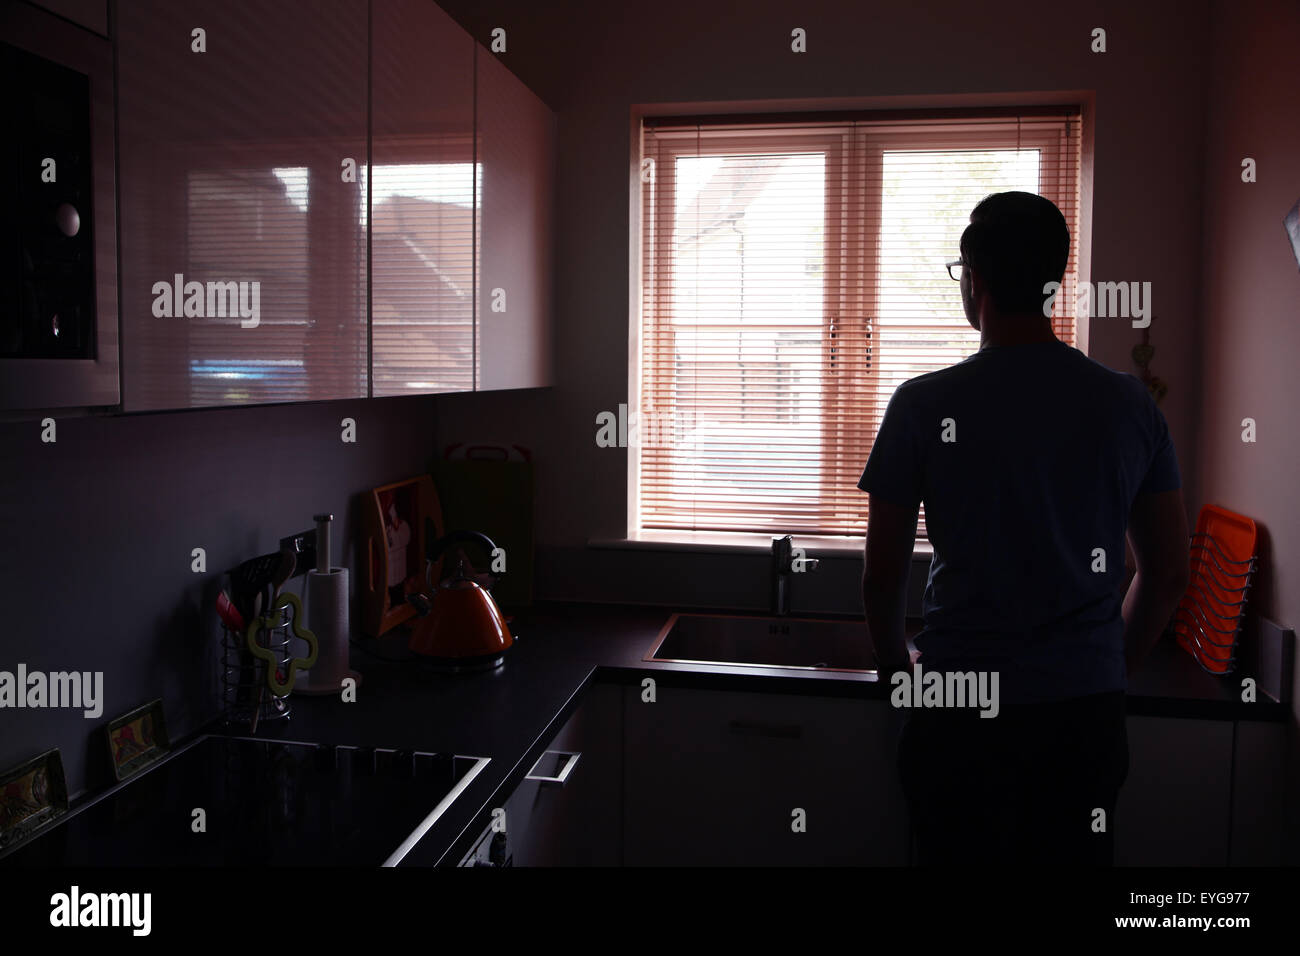 Young man in a kitchen looking out through a window blind. Landscape shape. - Stock Image